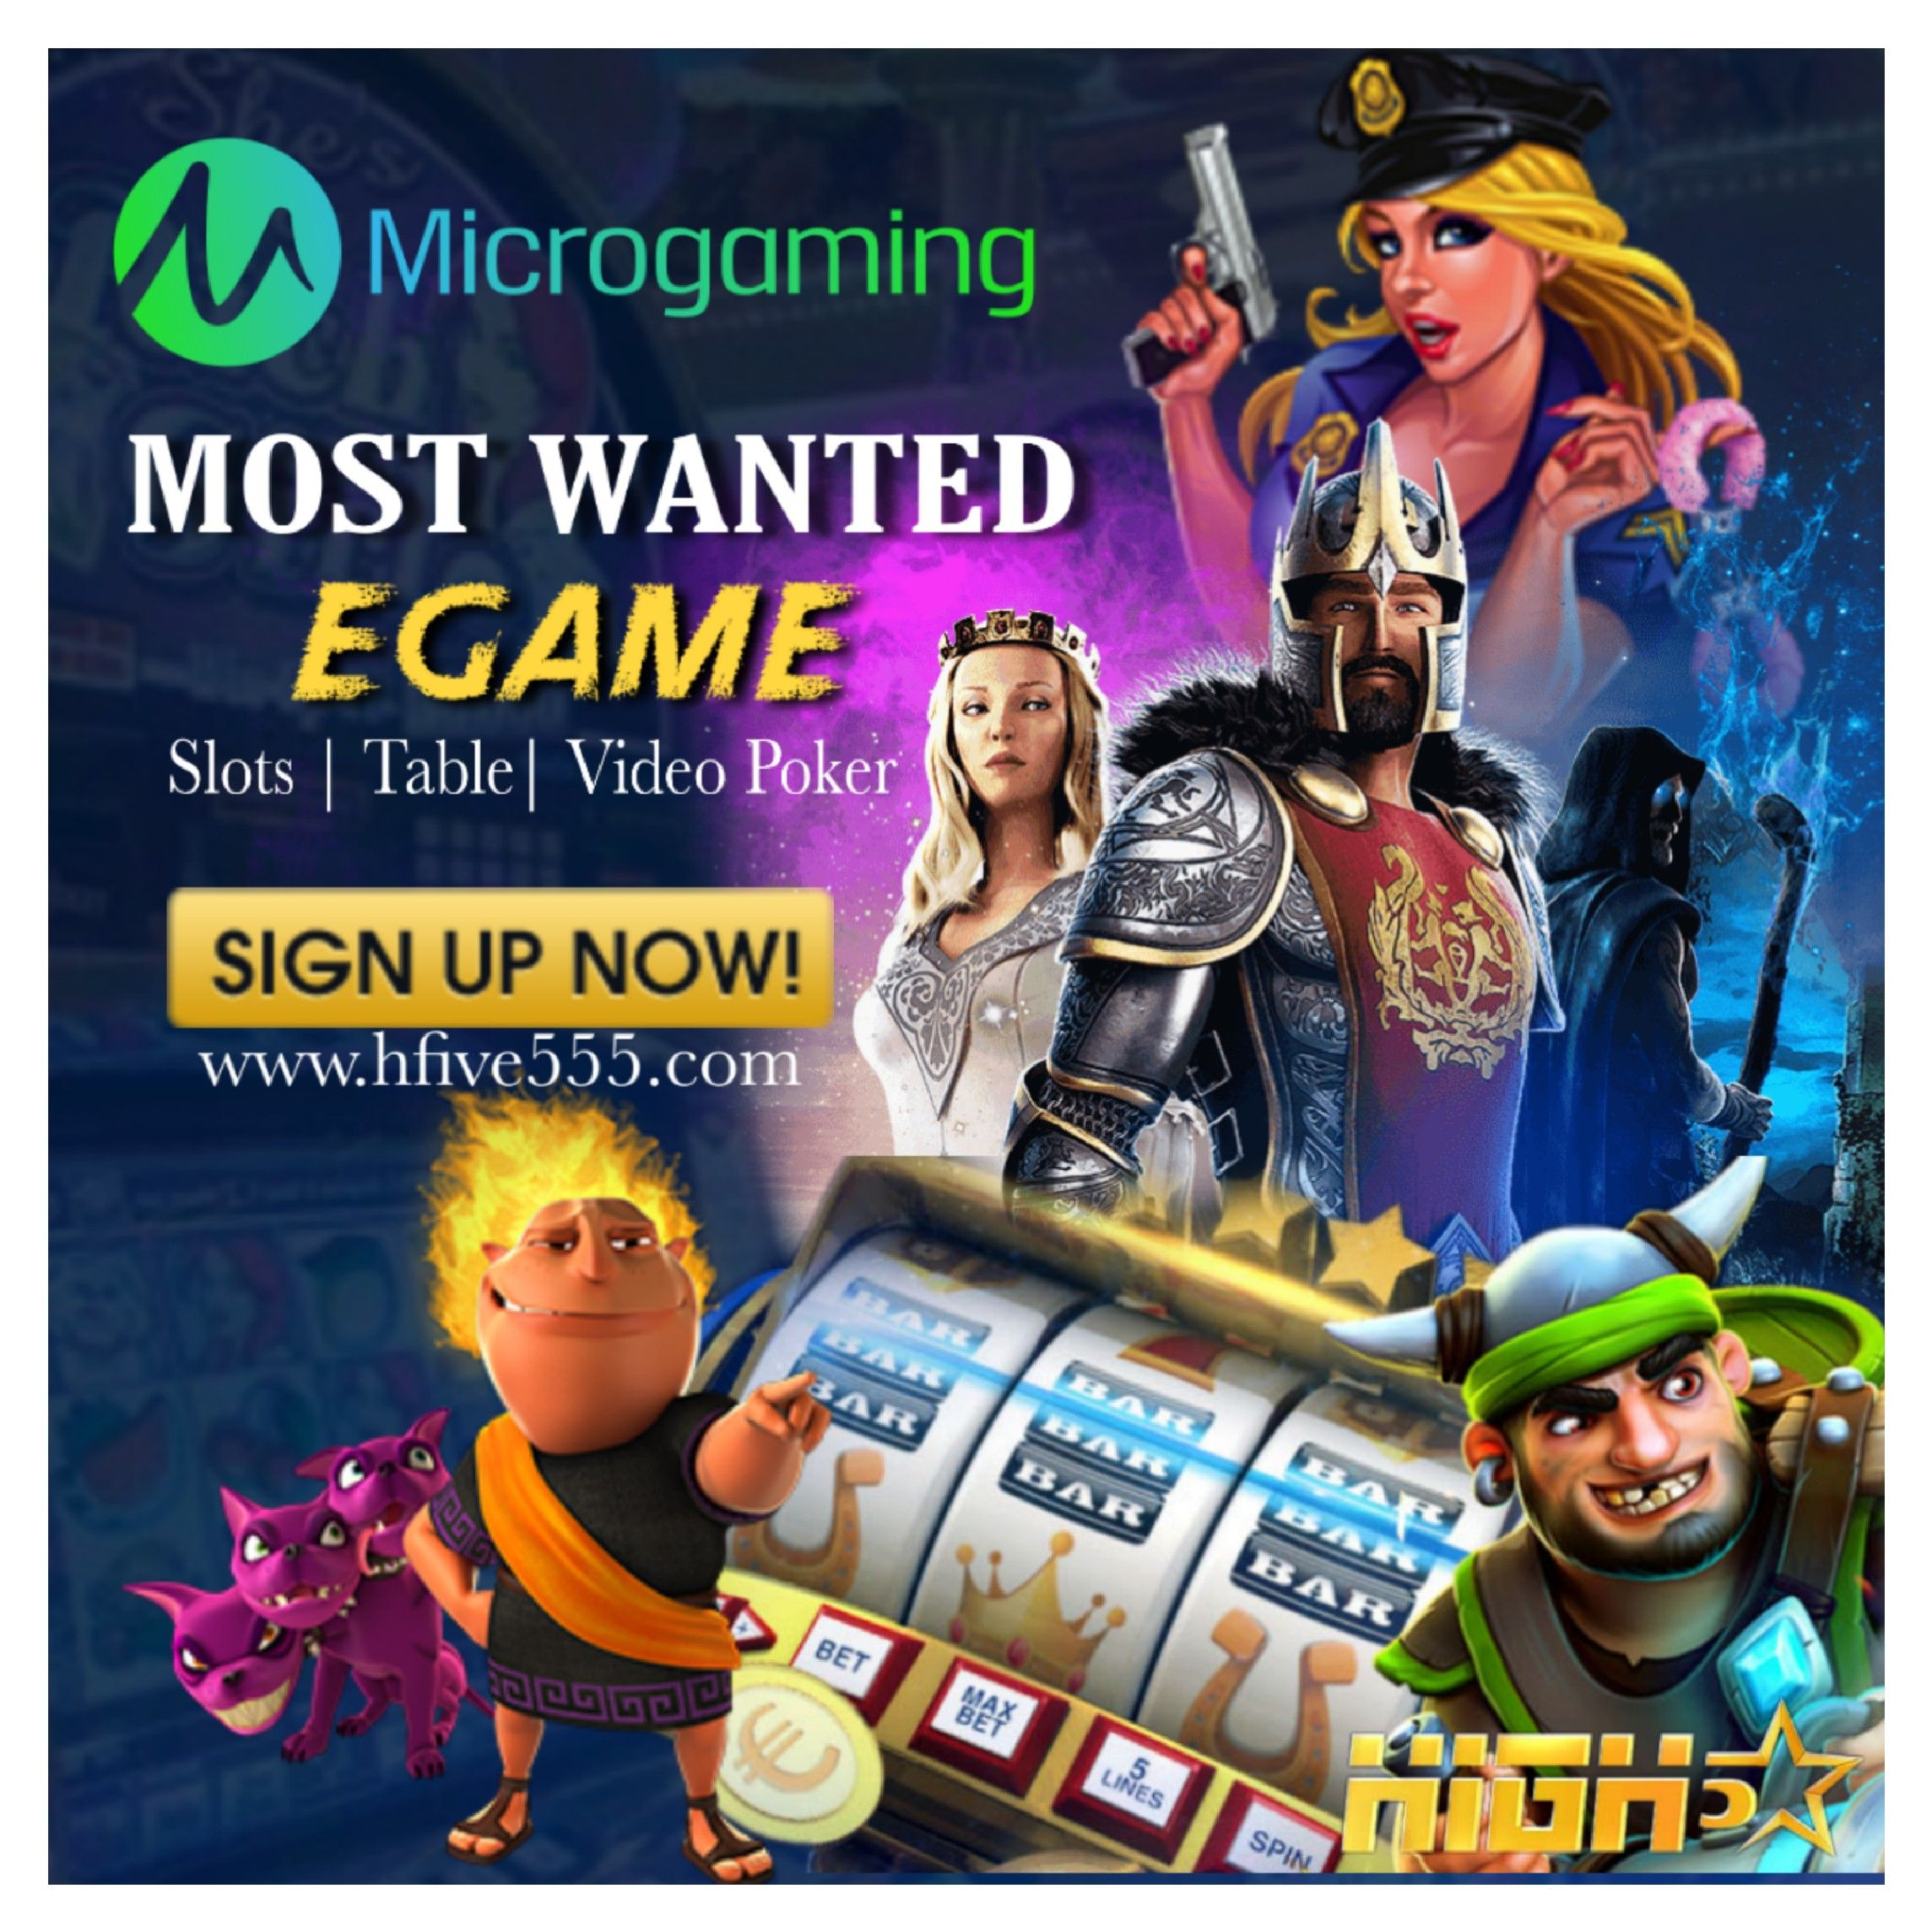 MICROGAMING🔥 Most wanted slot 🥰 Sign up now and get